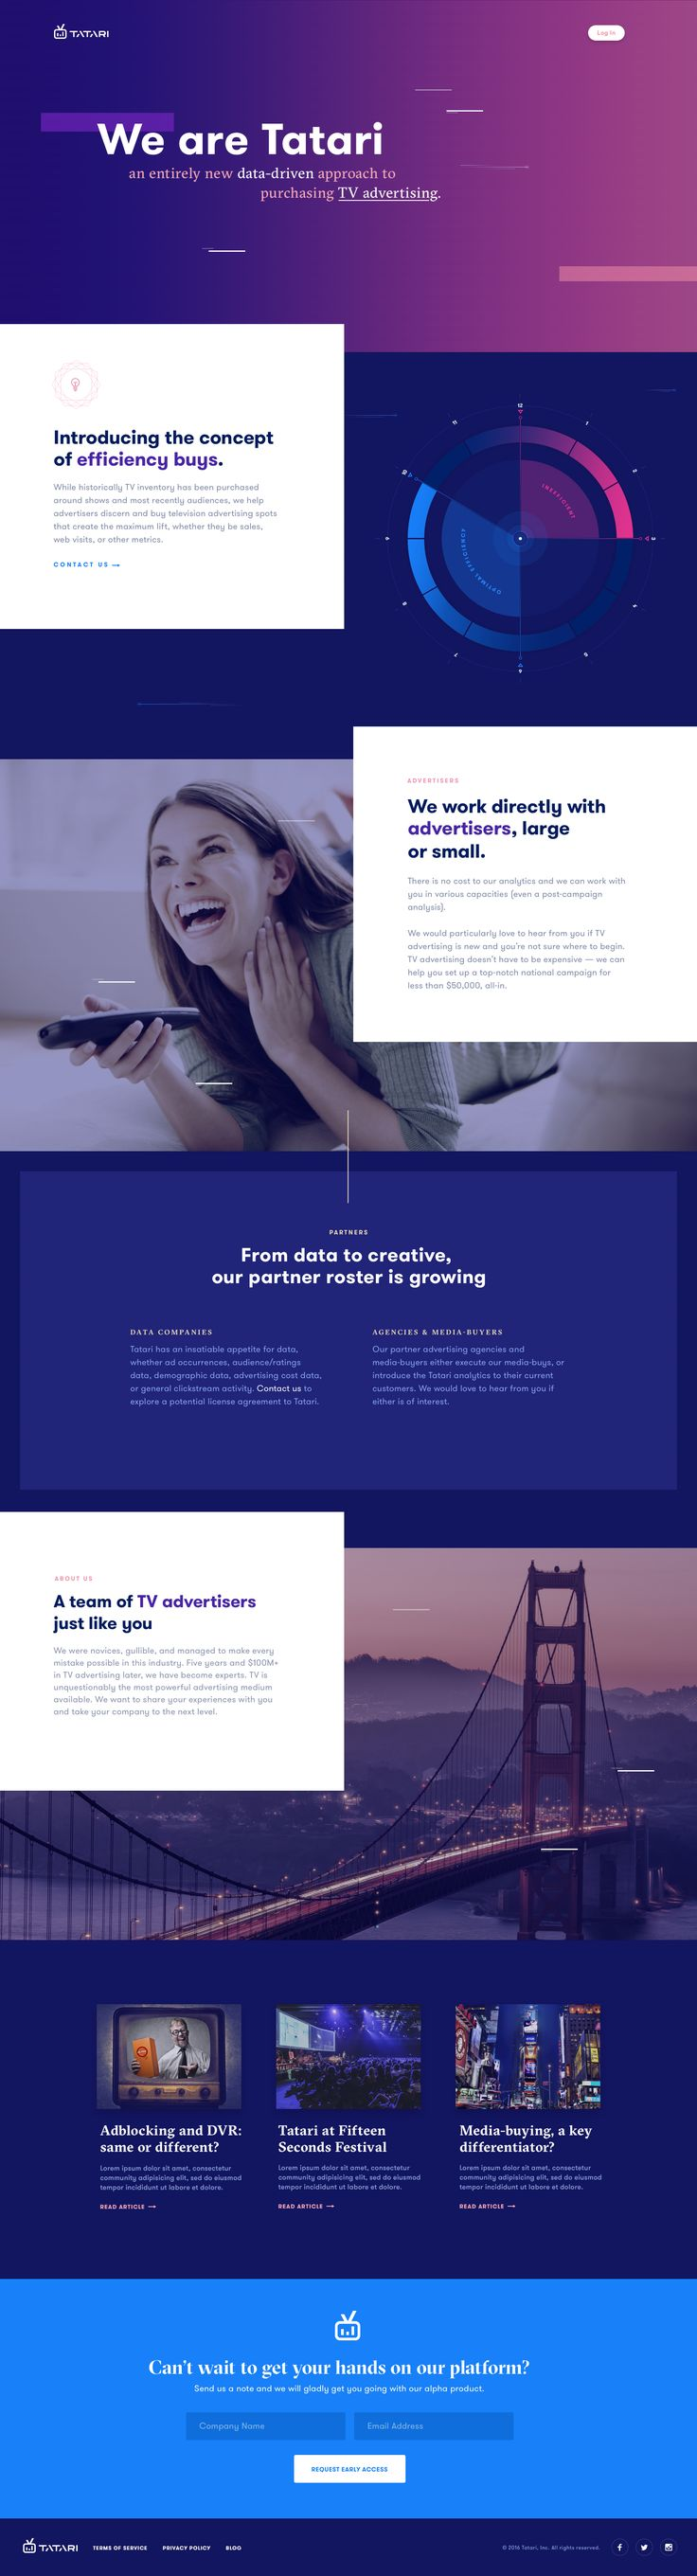 TV Advertising Platform Landing Page